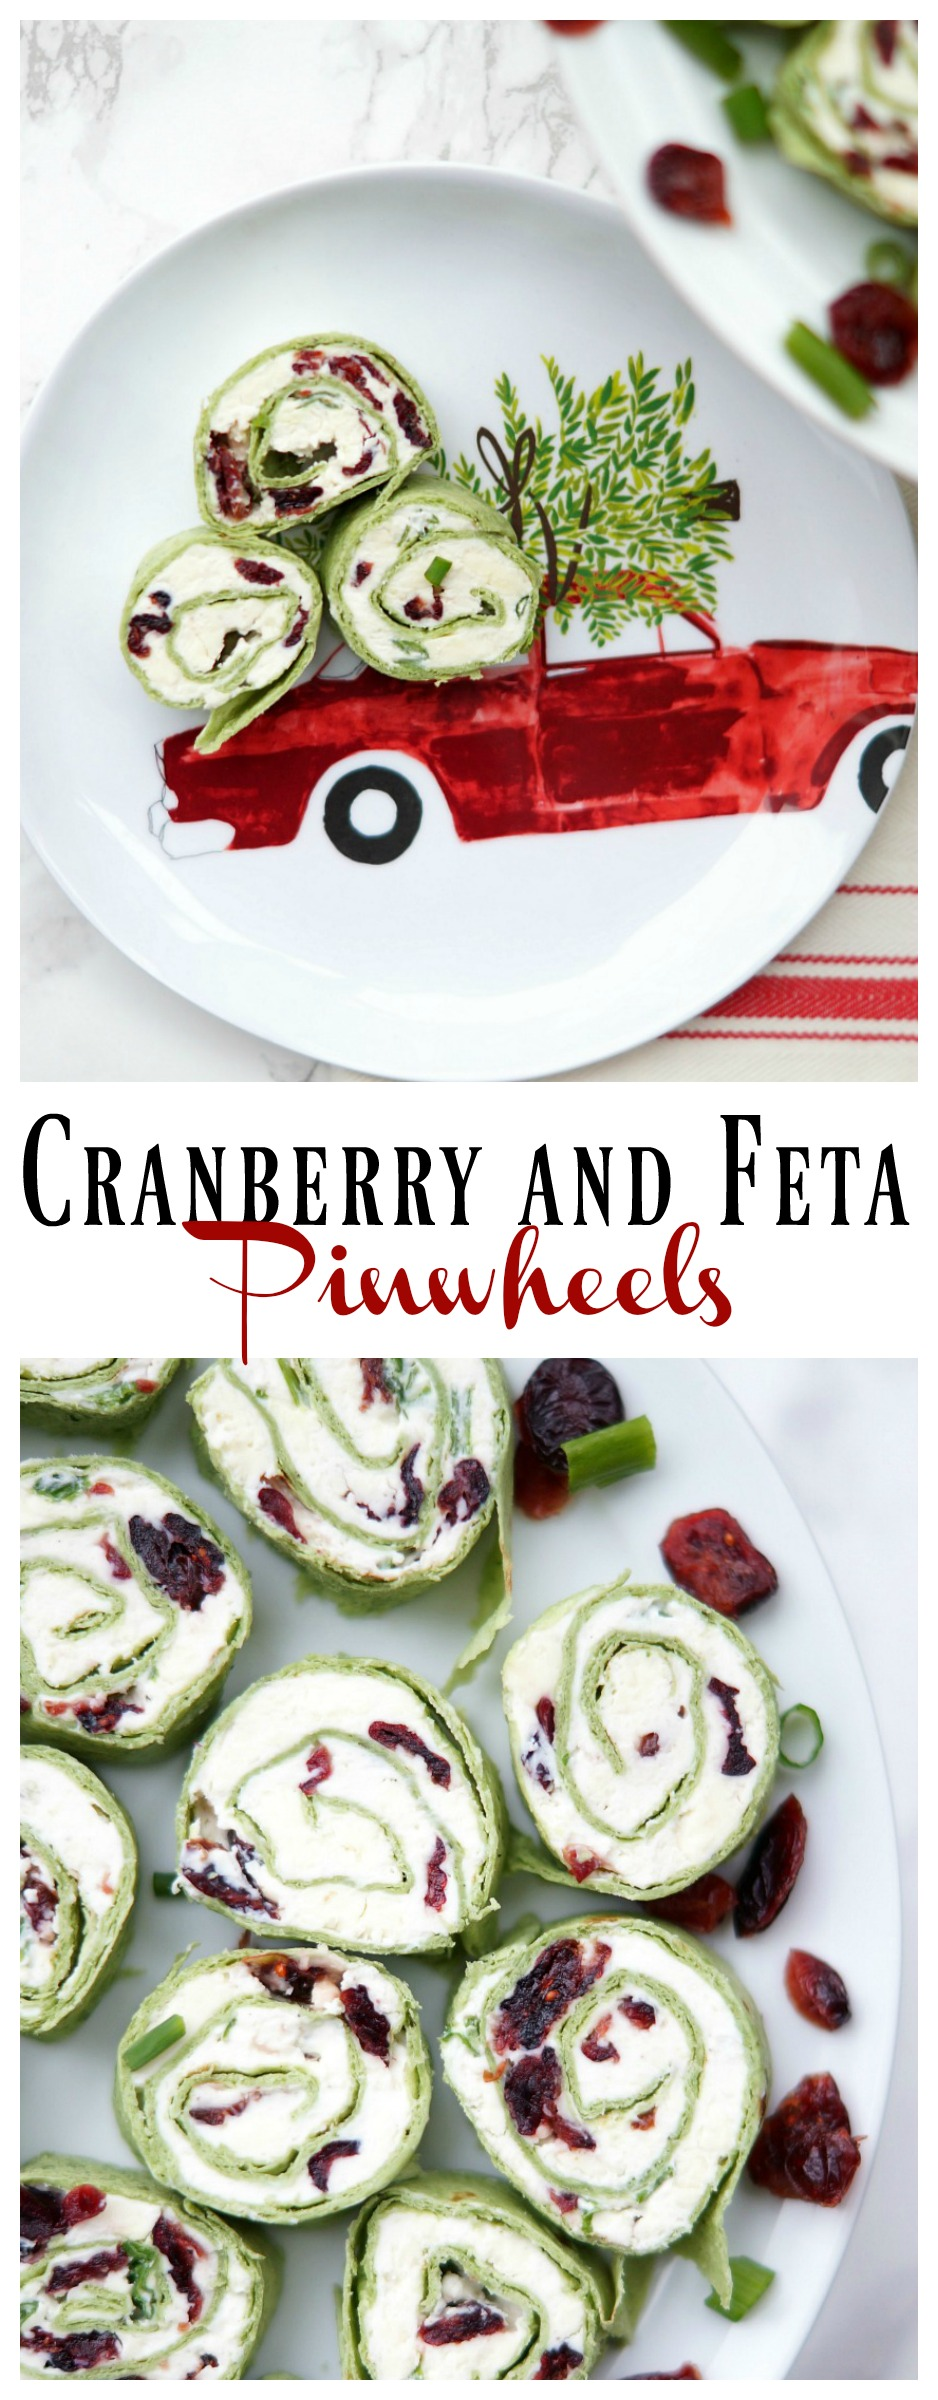 Cranberry and Feta Pinwheels, an easy appetizer perfect for Christmas!